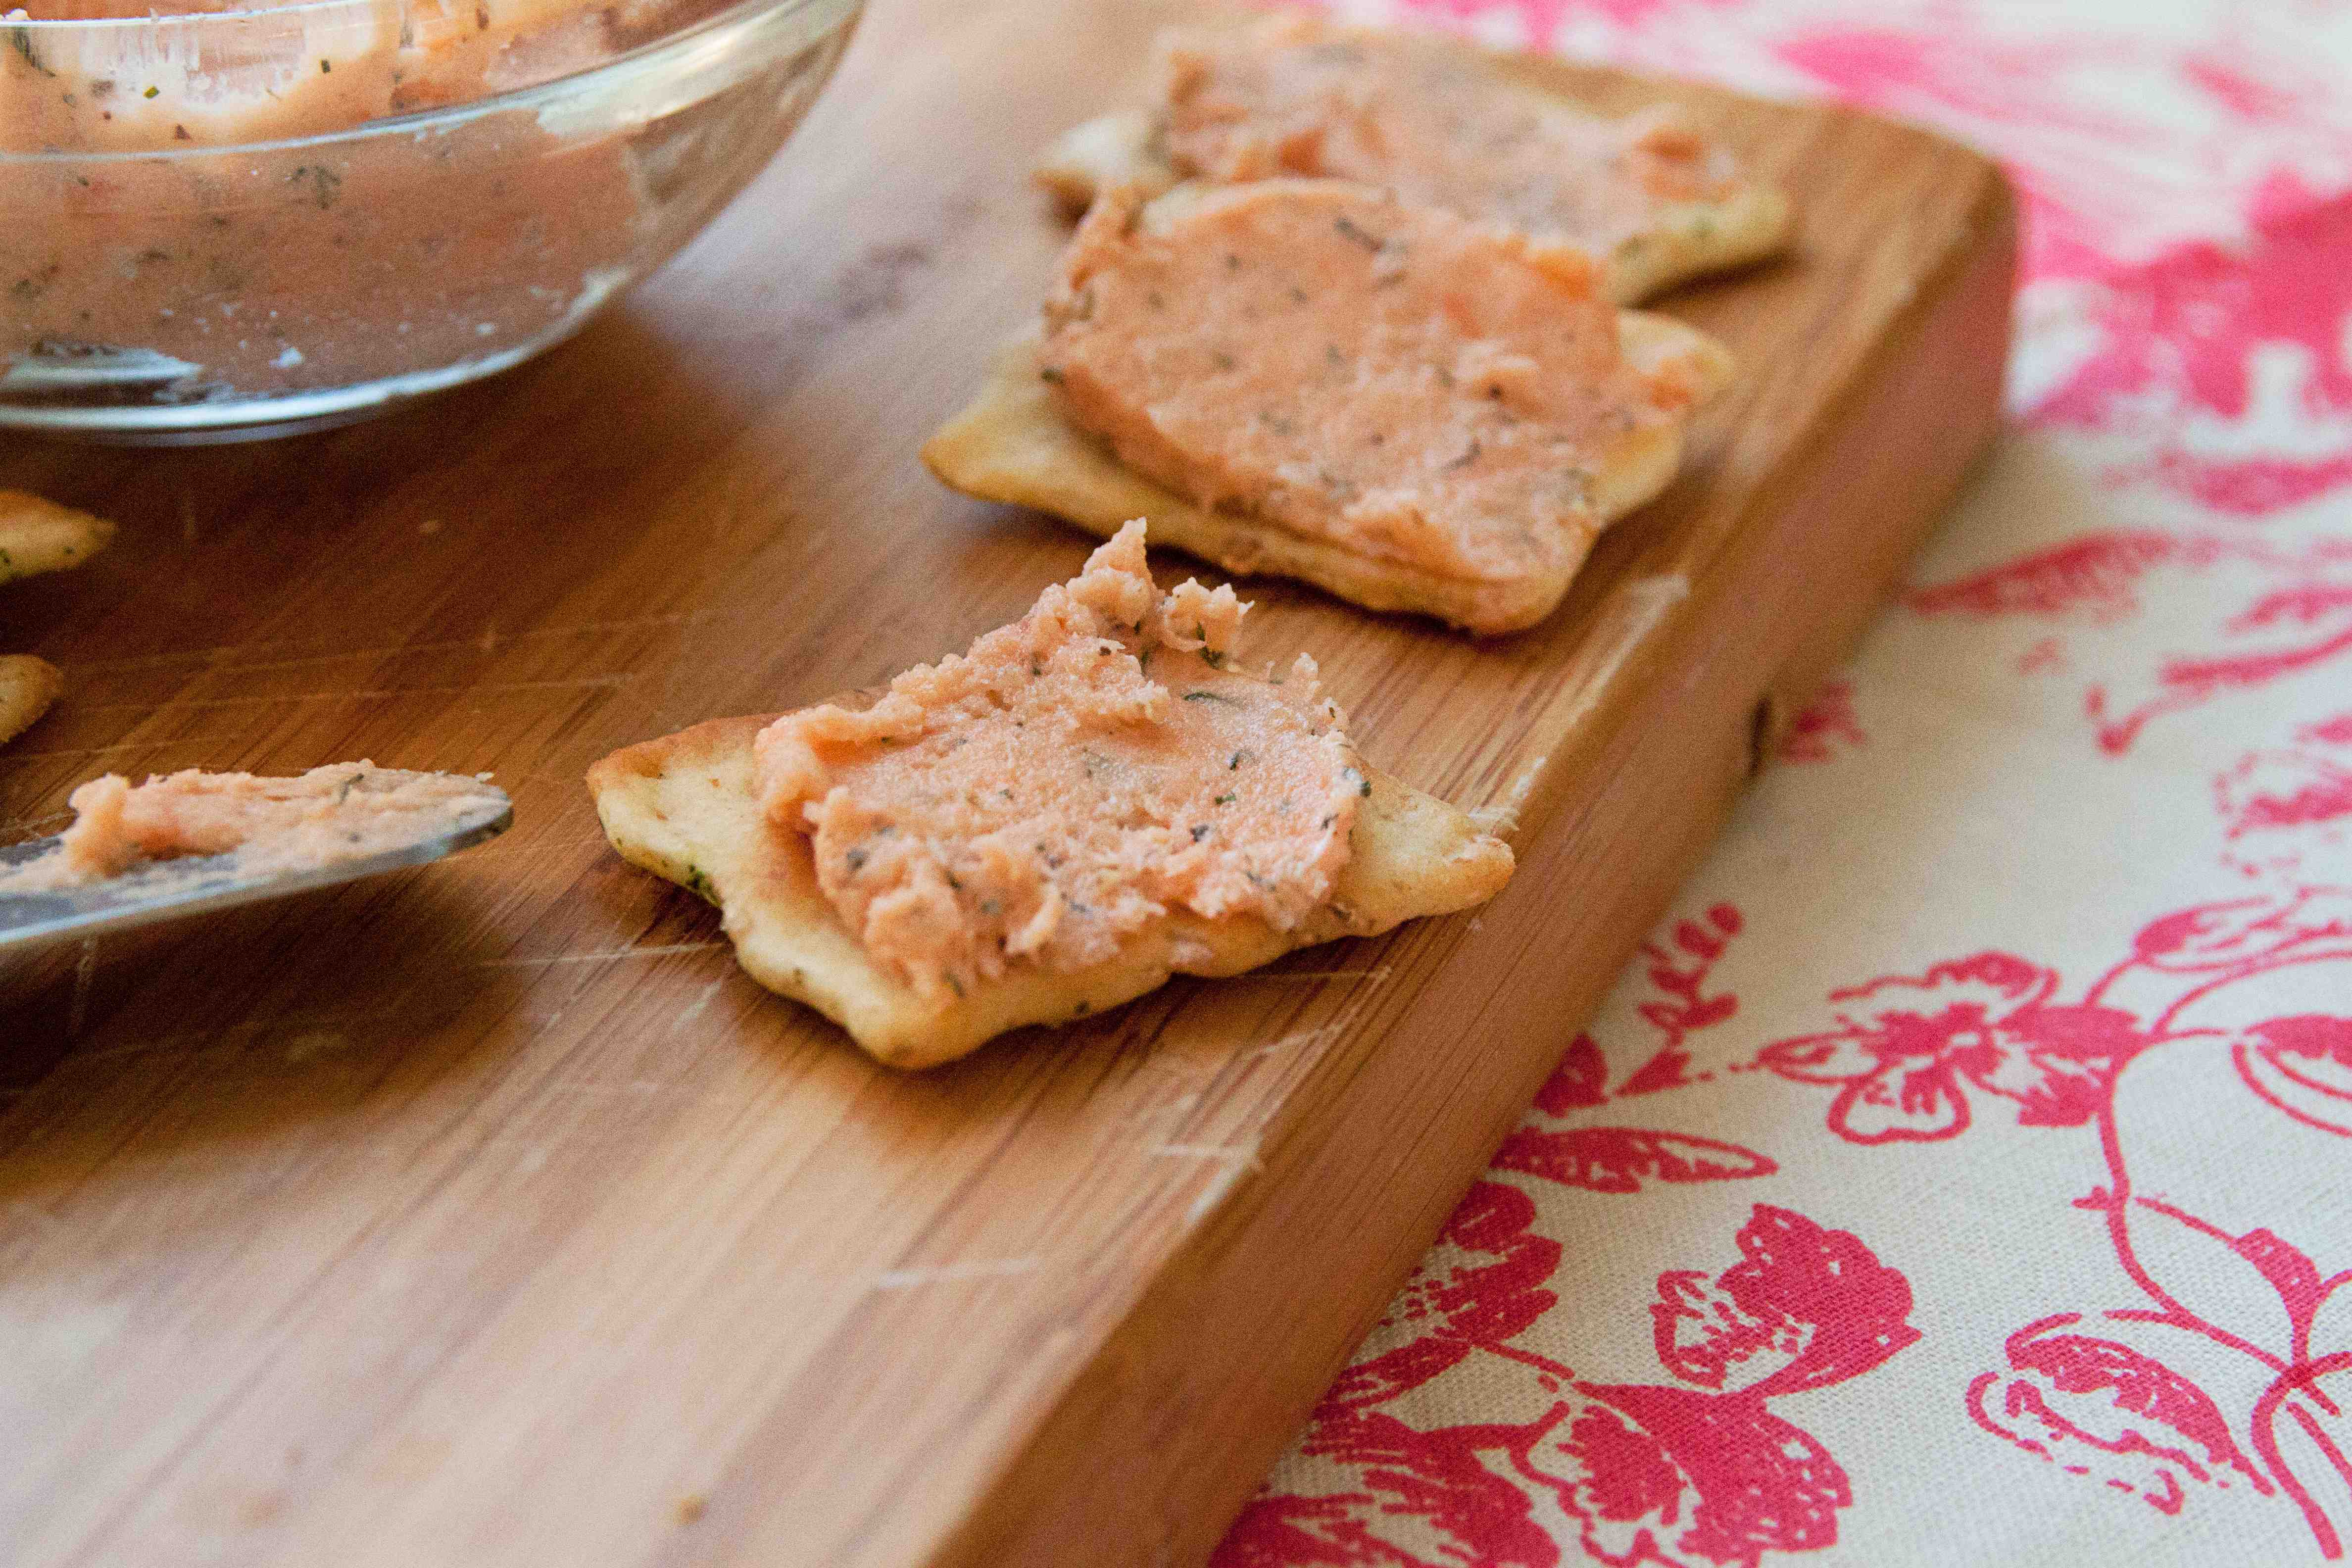 Pictured: Linda's Salmon Pâté that I've loved since childhood ...